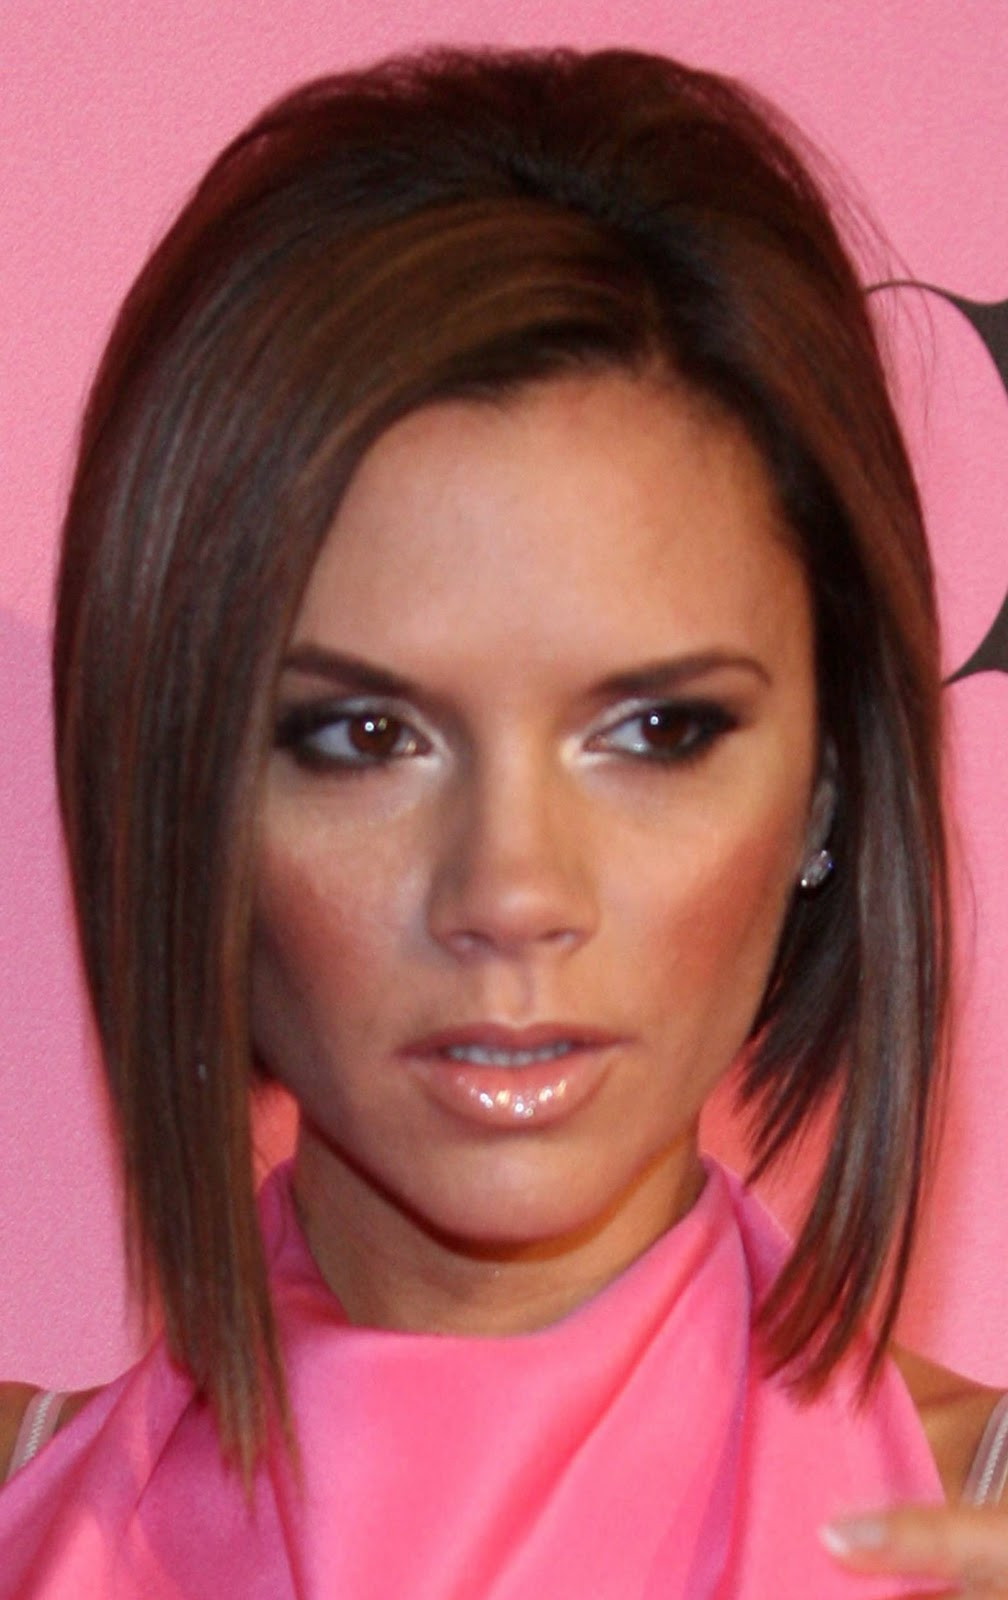 Hairstyles For Celebrity Celebrity Hairstyles Victoria Beckham